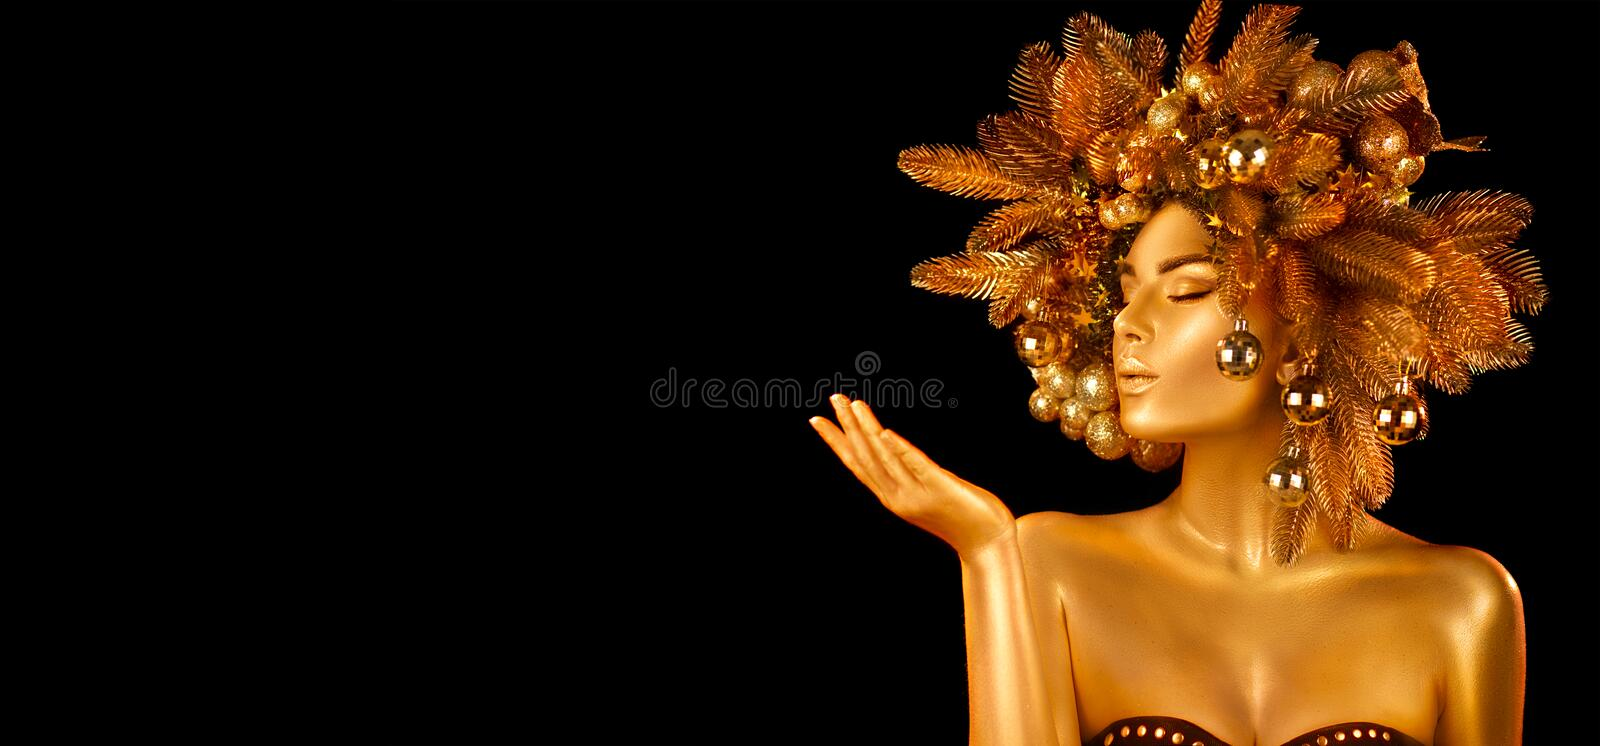 Christmas Woman. Winter girl pointing Hand, holding product. Holiday Hairstyle and gold skin Makeup. Girl in decorated Xmas wreath stock photo